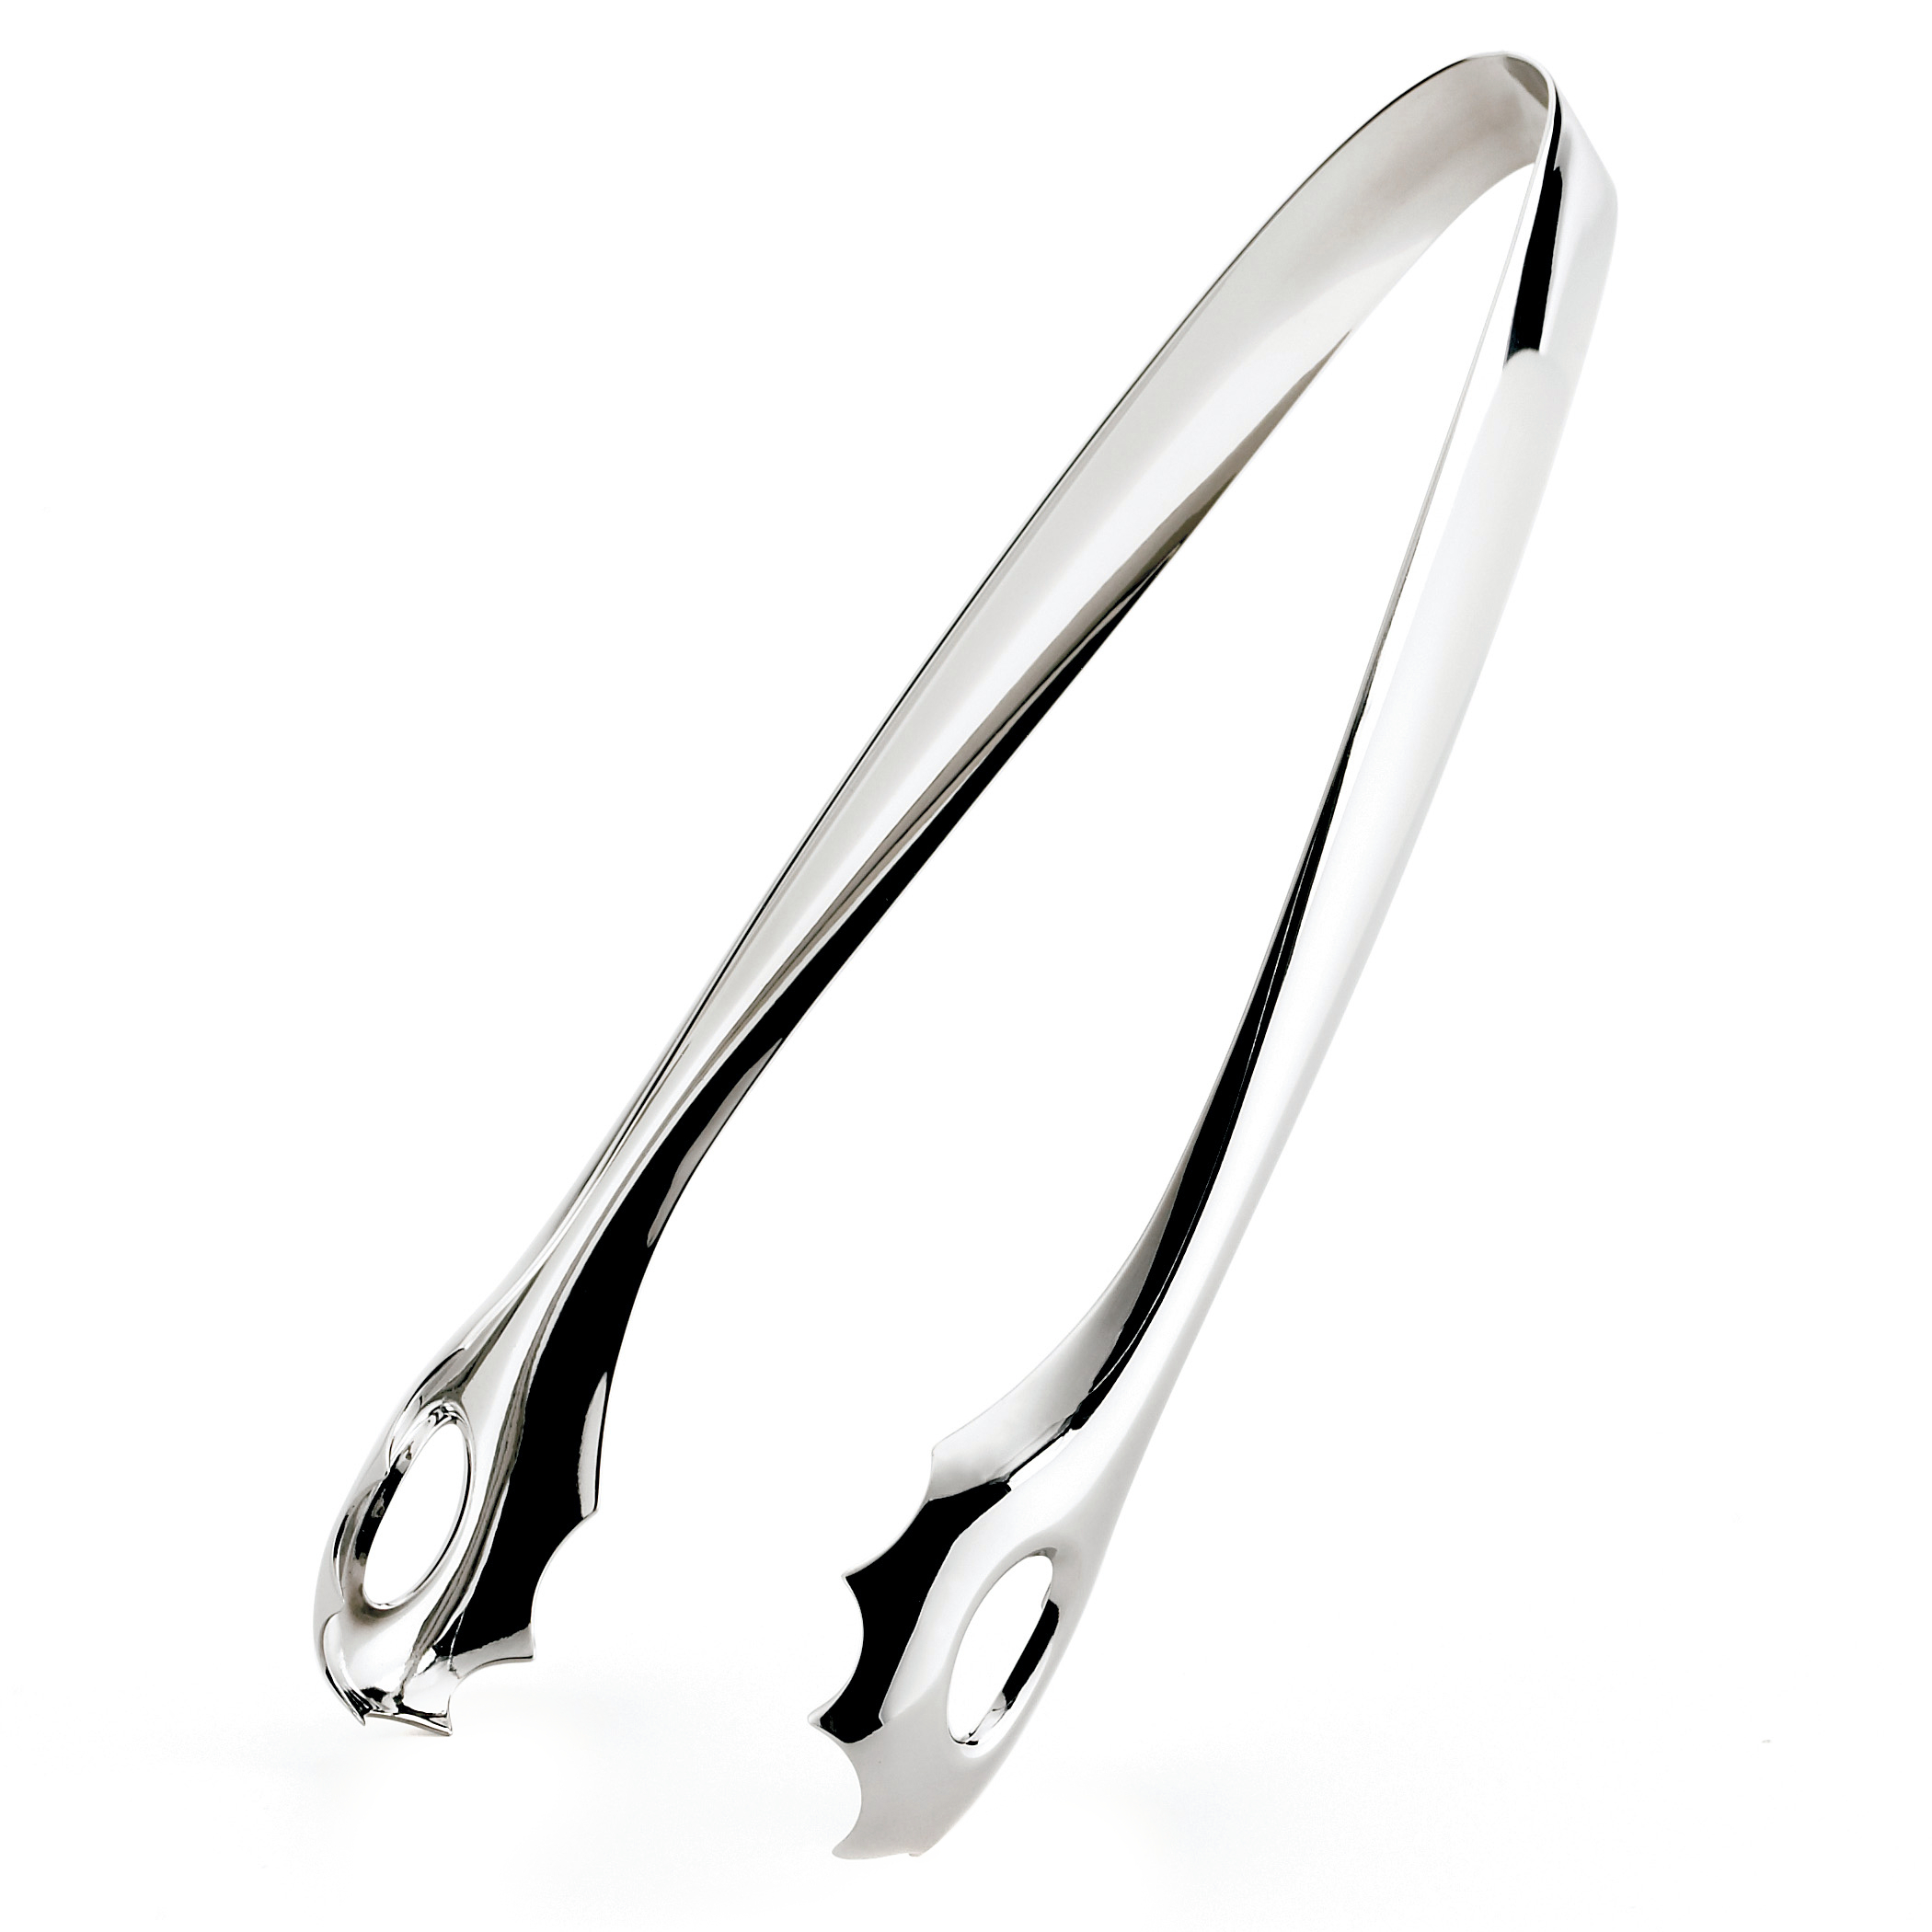 Cuisipro Stainless Steel 7 Inch Ice Tongs